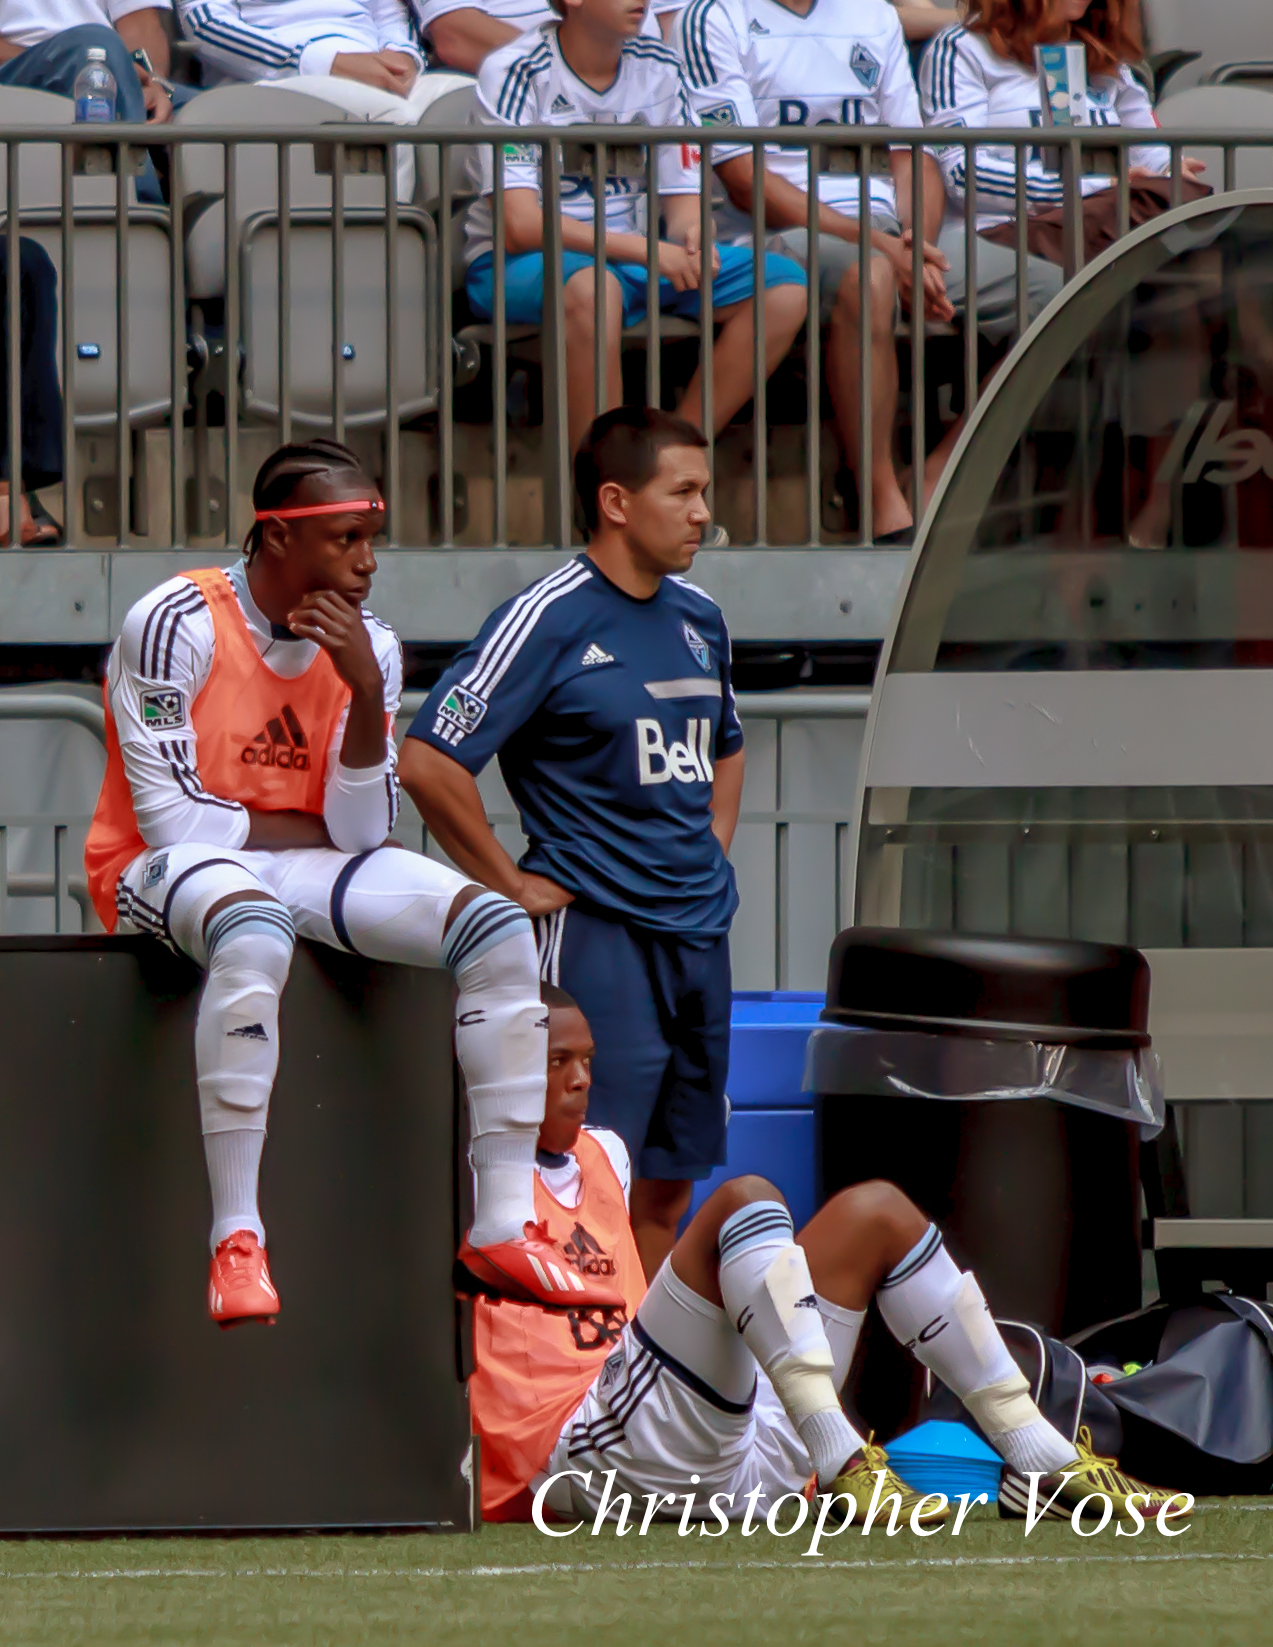 Substitutes Darren Mattocks andCarlyle Mitchelltake a break after warming up with Mike Young at BC Place on 1 September 2013.